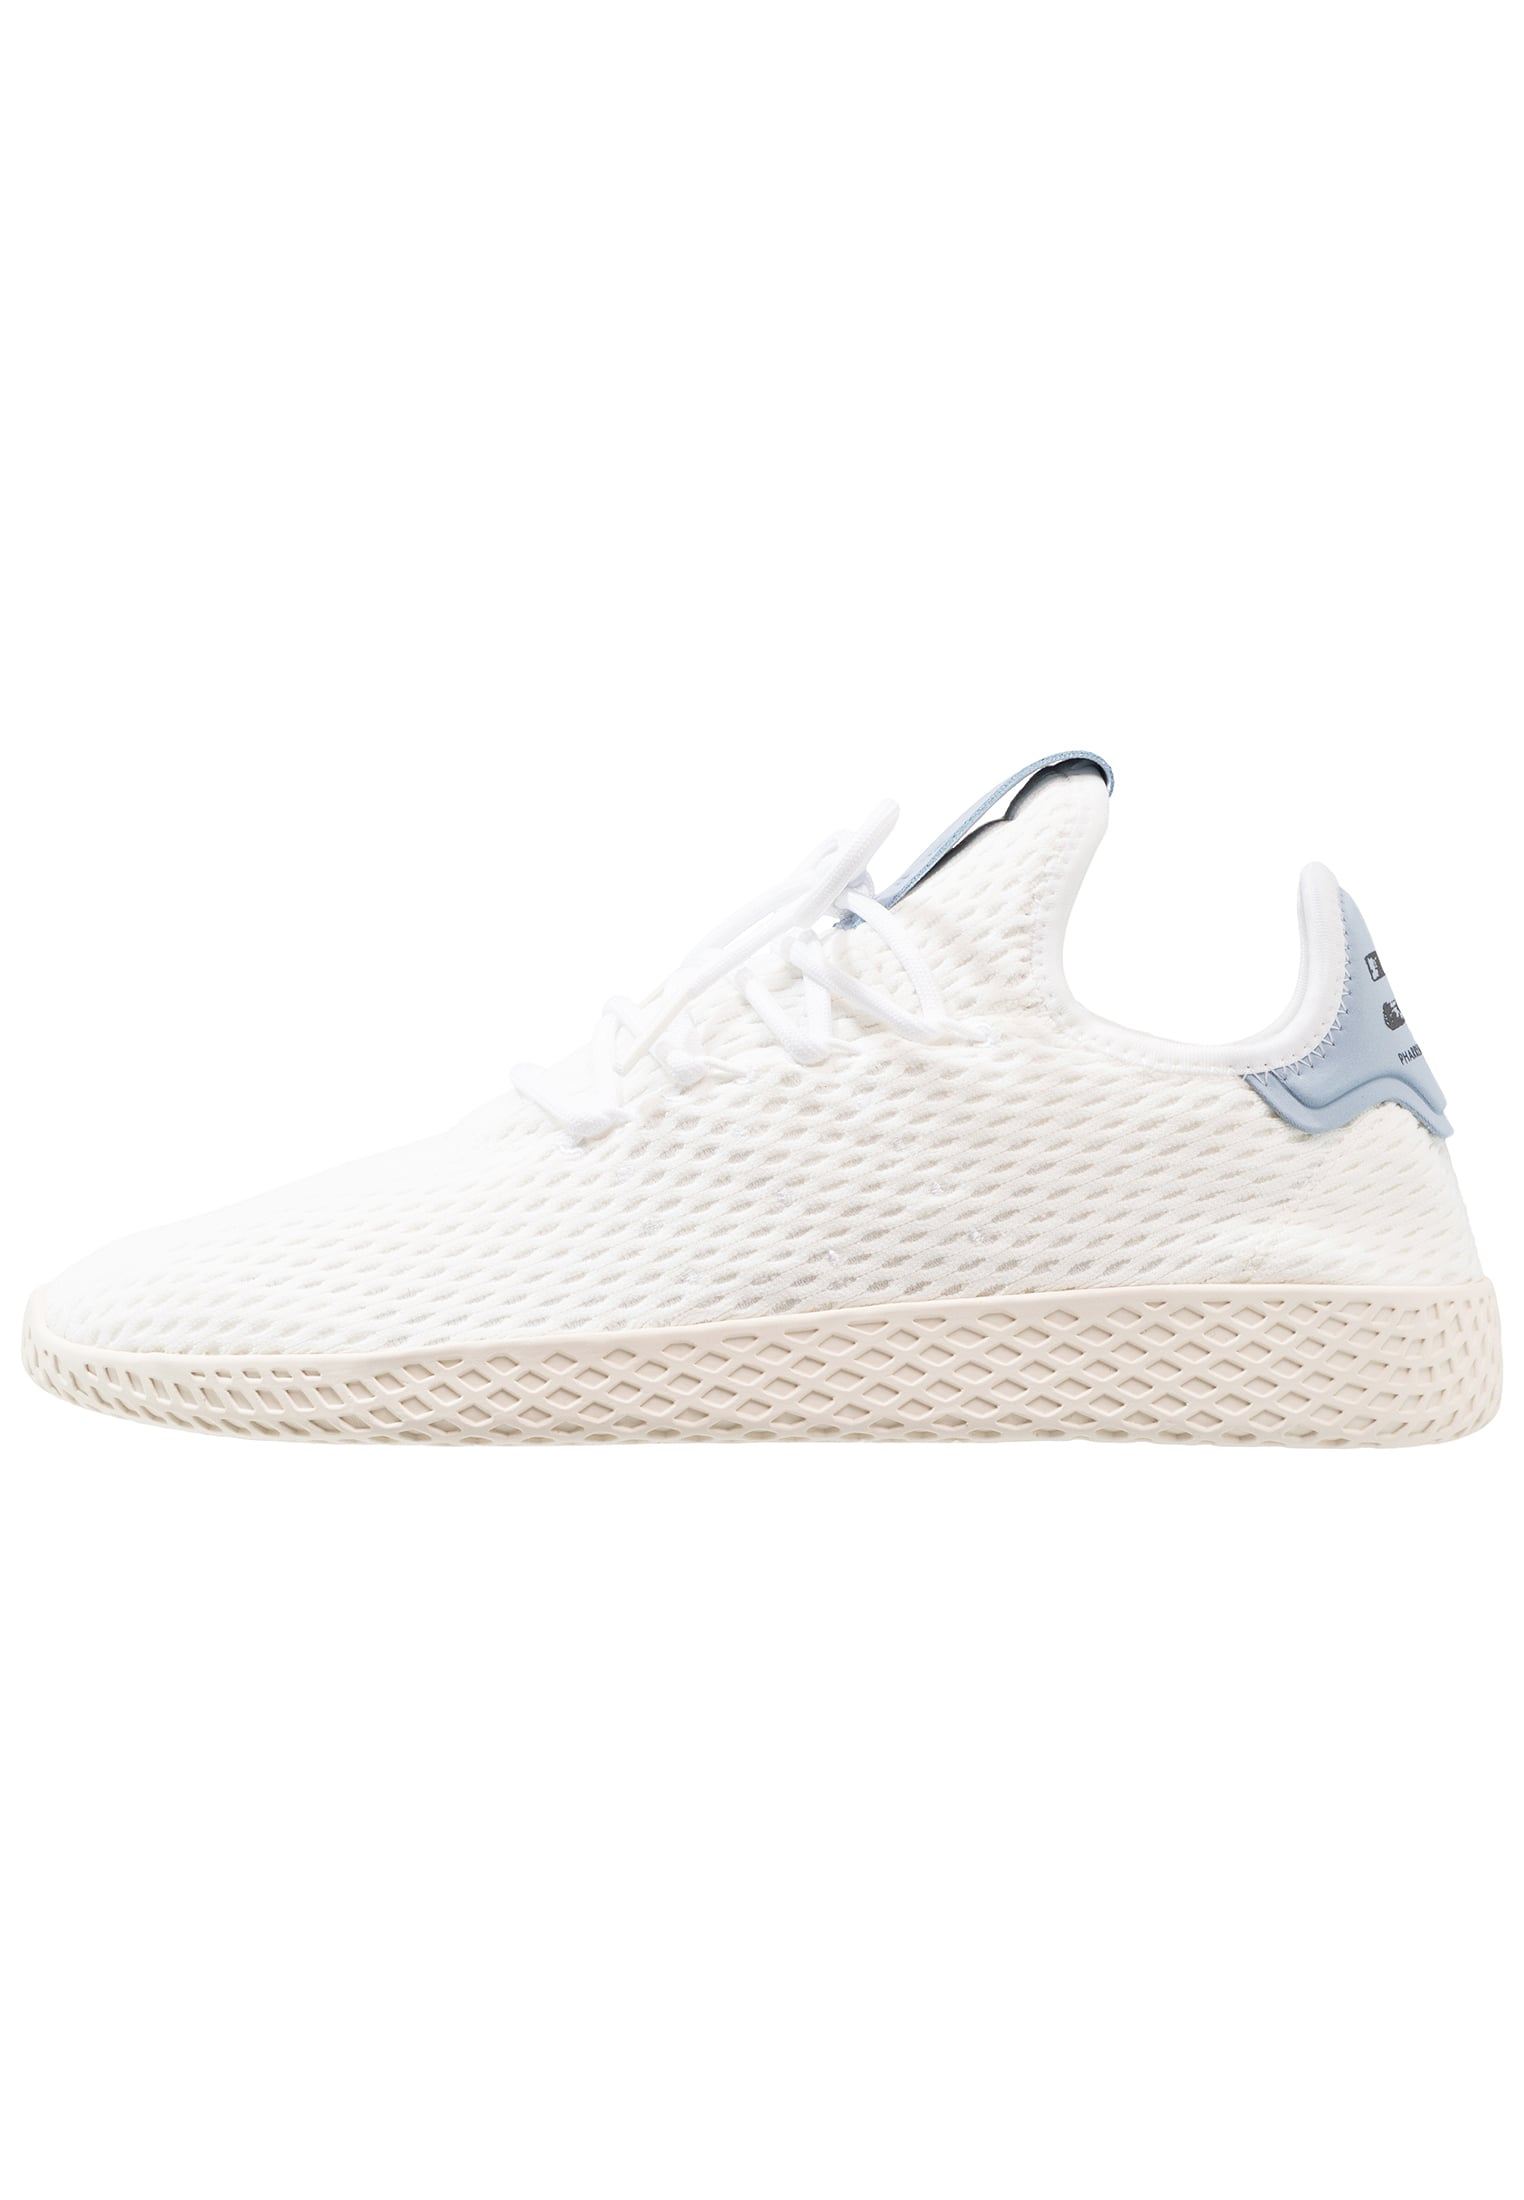 Pharrell Williams X adidas Stan Smith | ZALANDO